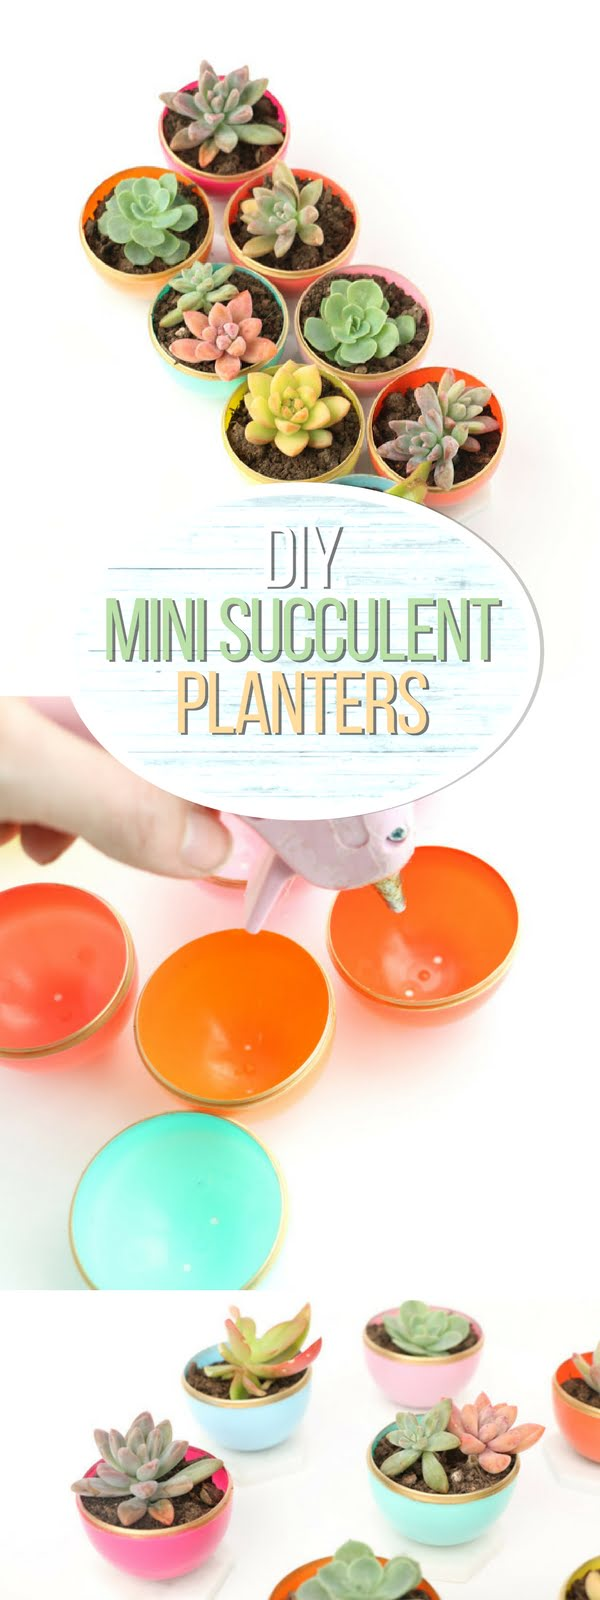 Check out how to make DIY mini succulent pots